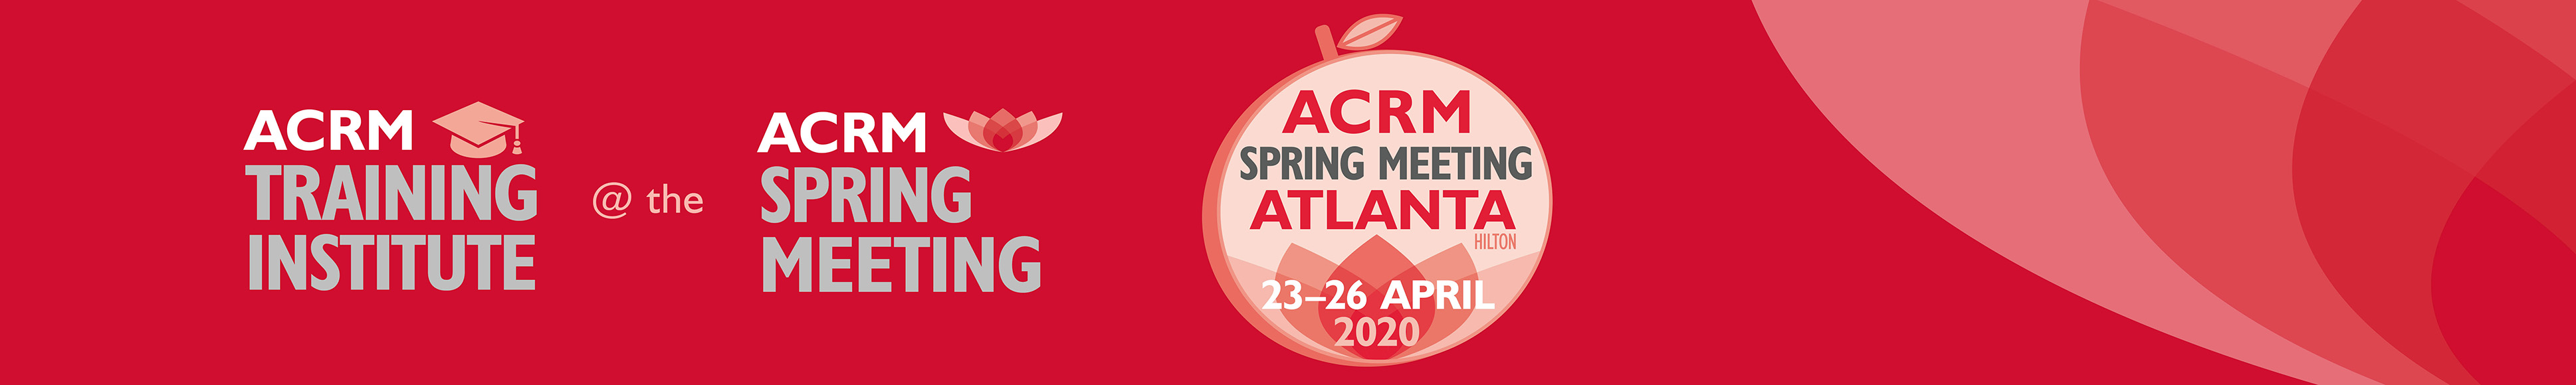 2020 ACRM Spring Meeting